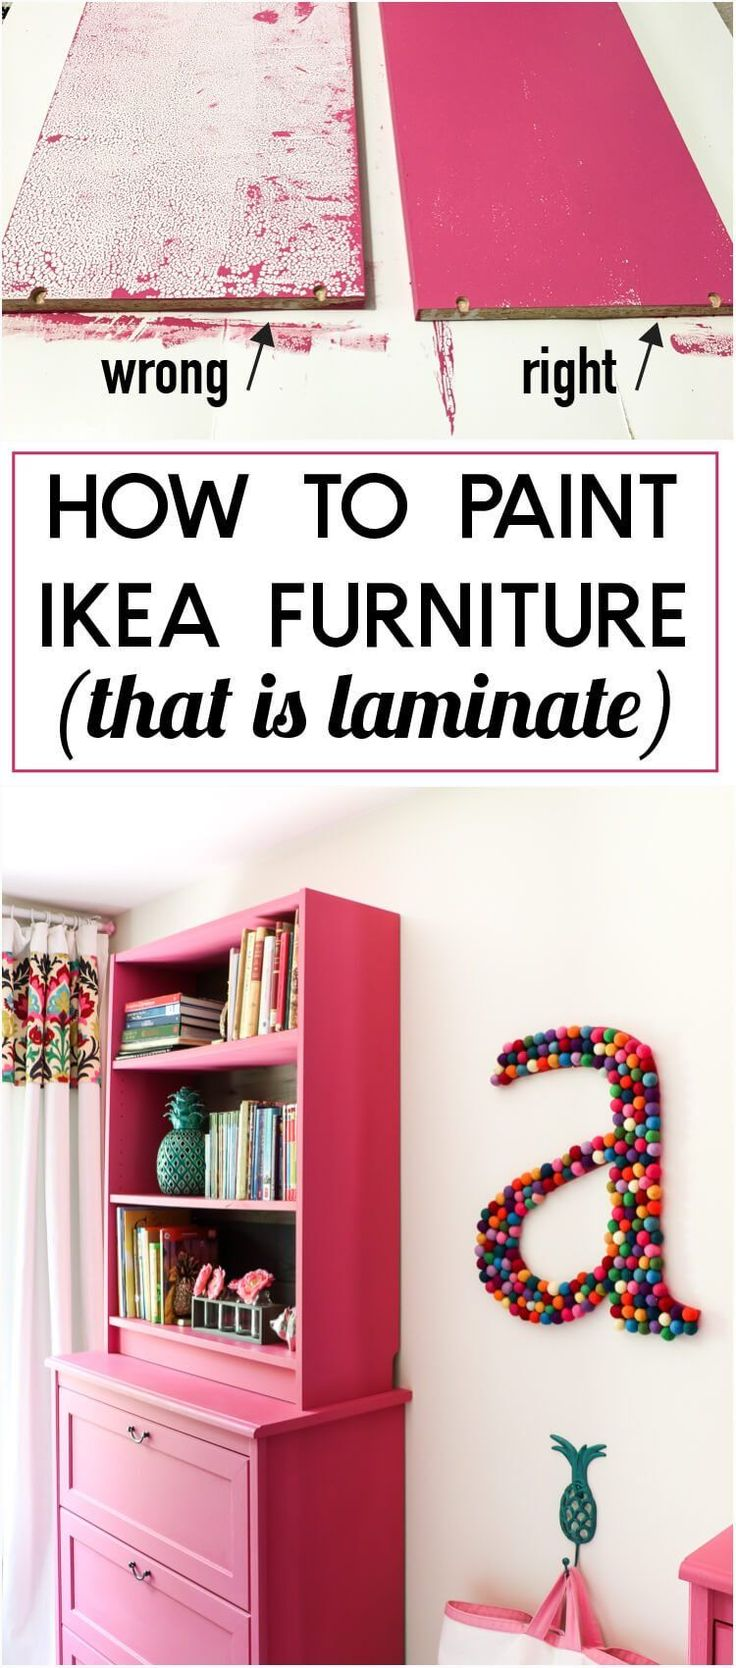 Knowing how to paint laminate furniture is vital for many furniture makeovers! This trick is brilliant!